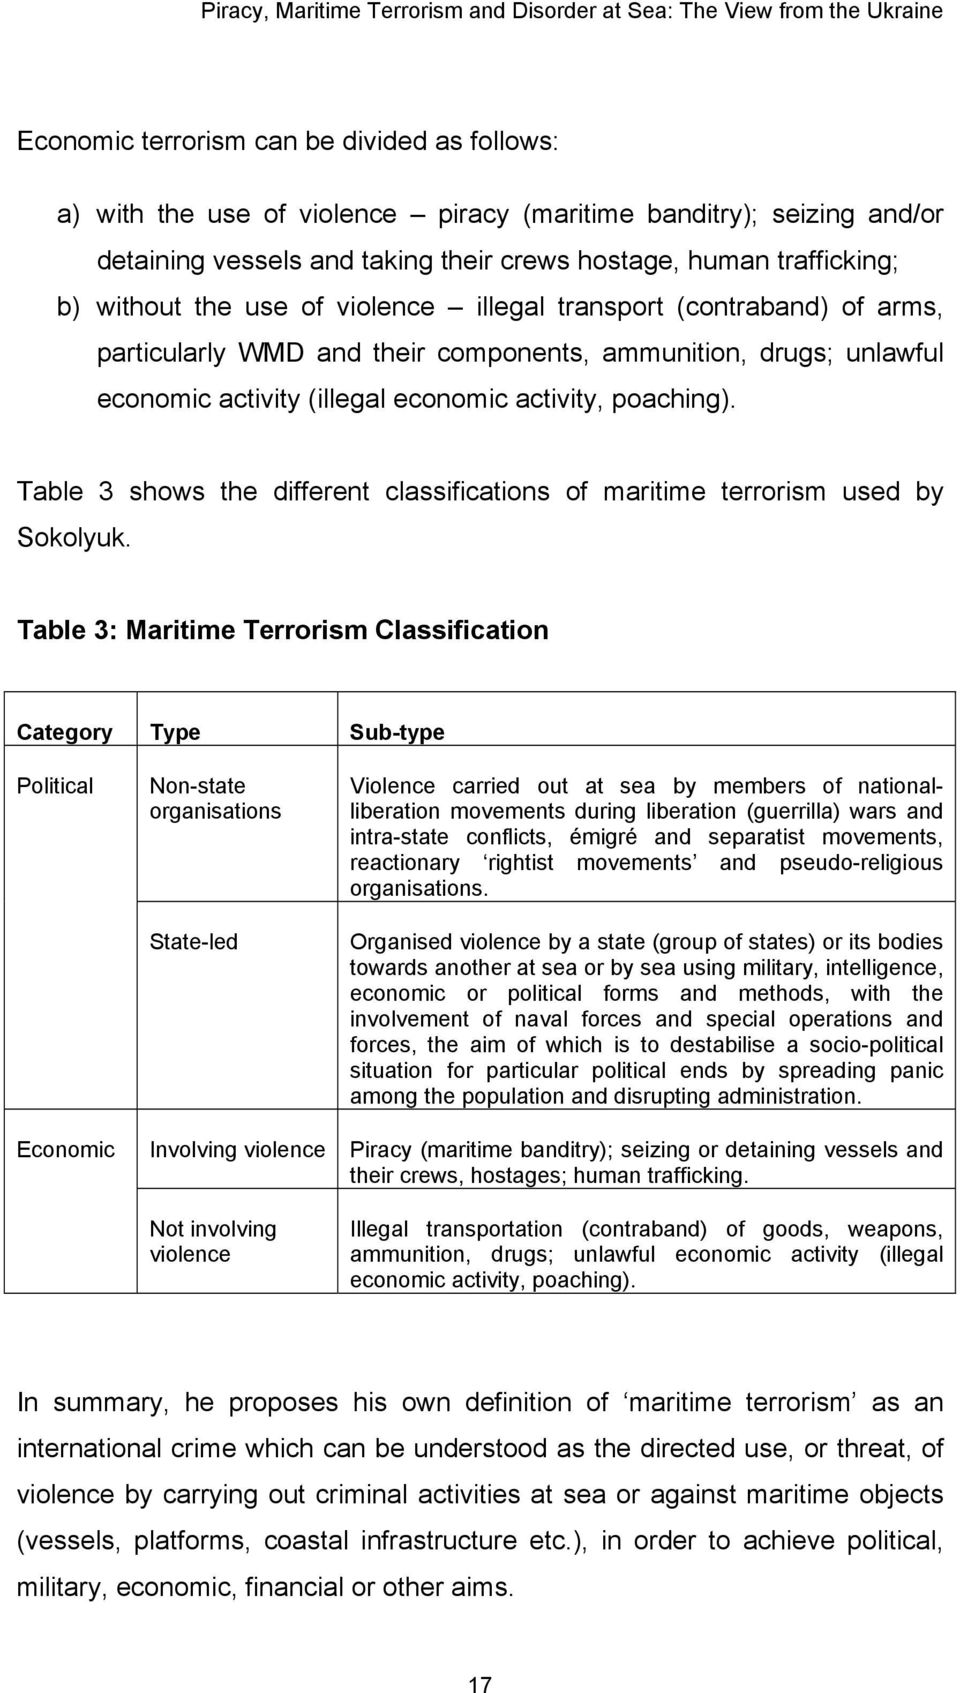 Table 3 shows the different classifications of maritime terrorism used by Sokolyuk.